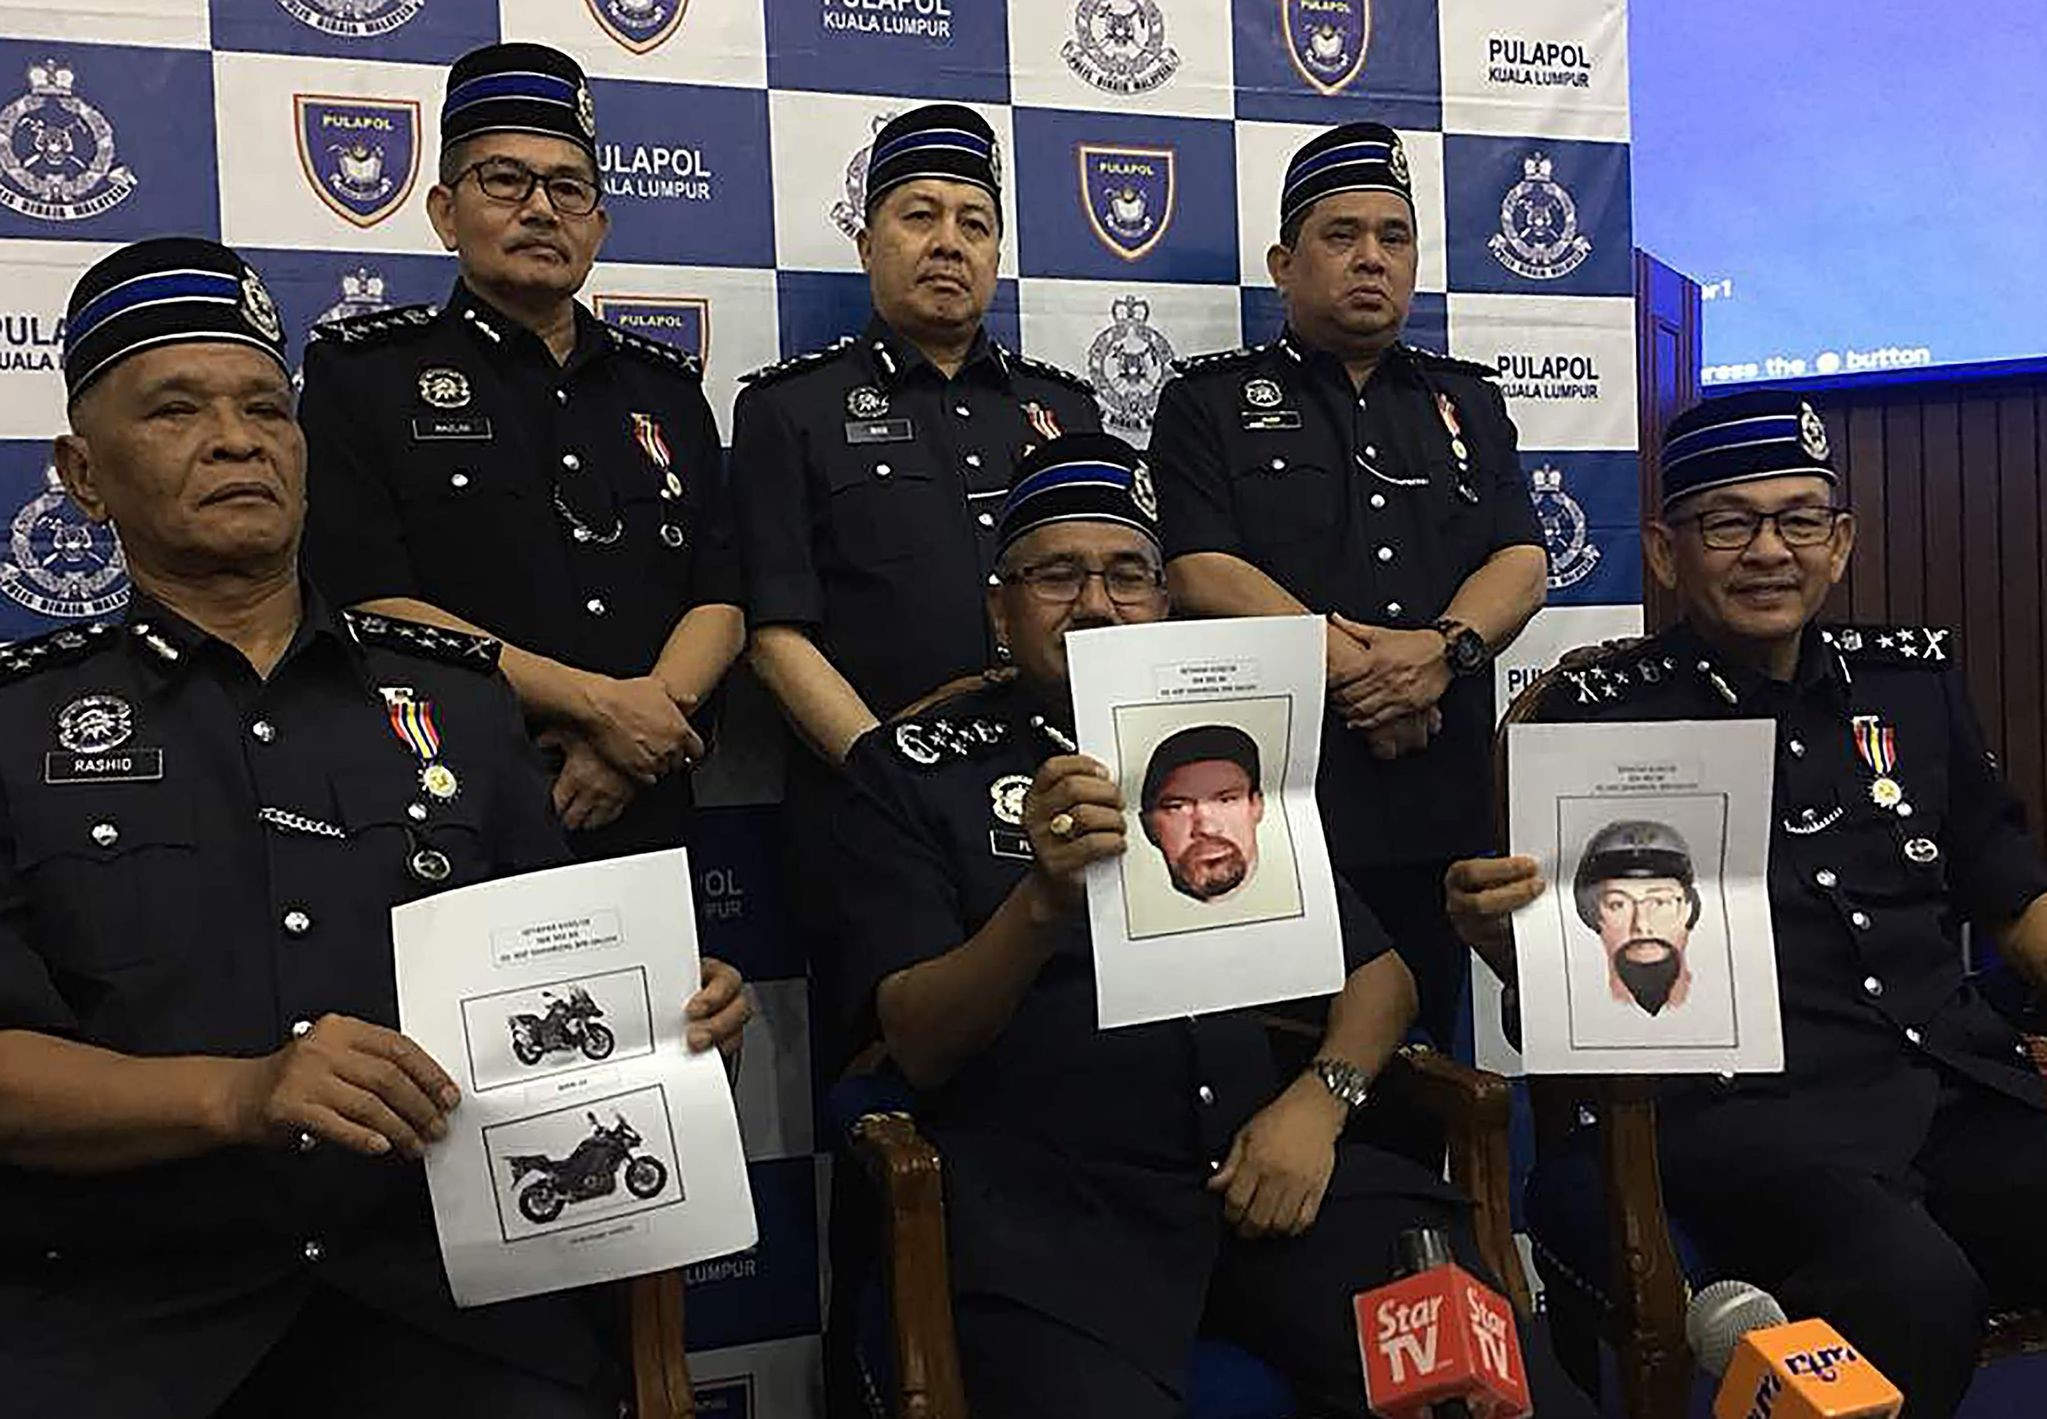 Malaysia Chief Police Mohamad Fuzi Harun (C) with other police officials holding computer-generated images of suspects involved in assassinated a Palestinian scientist in a drive-by shooting in Kuala Lumpur. (AFP Photo)